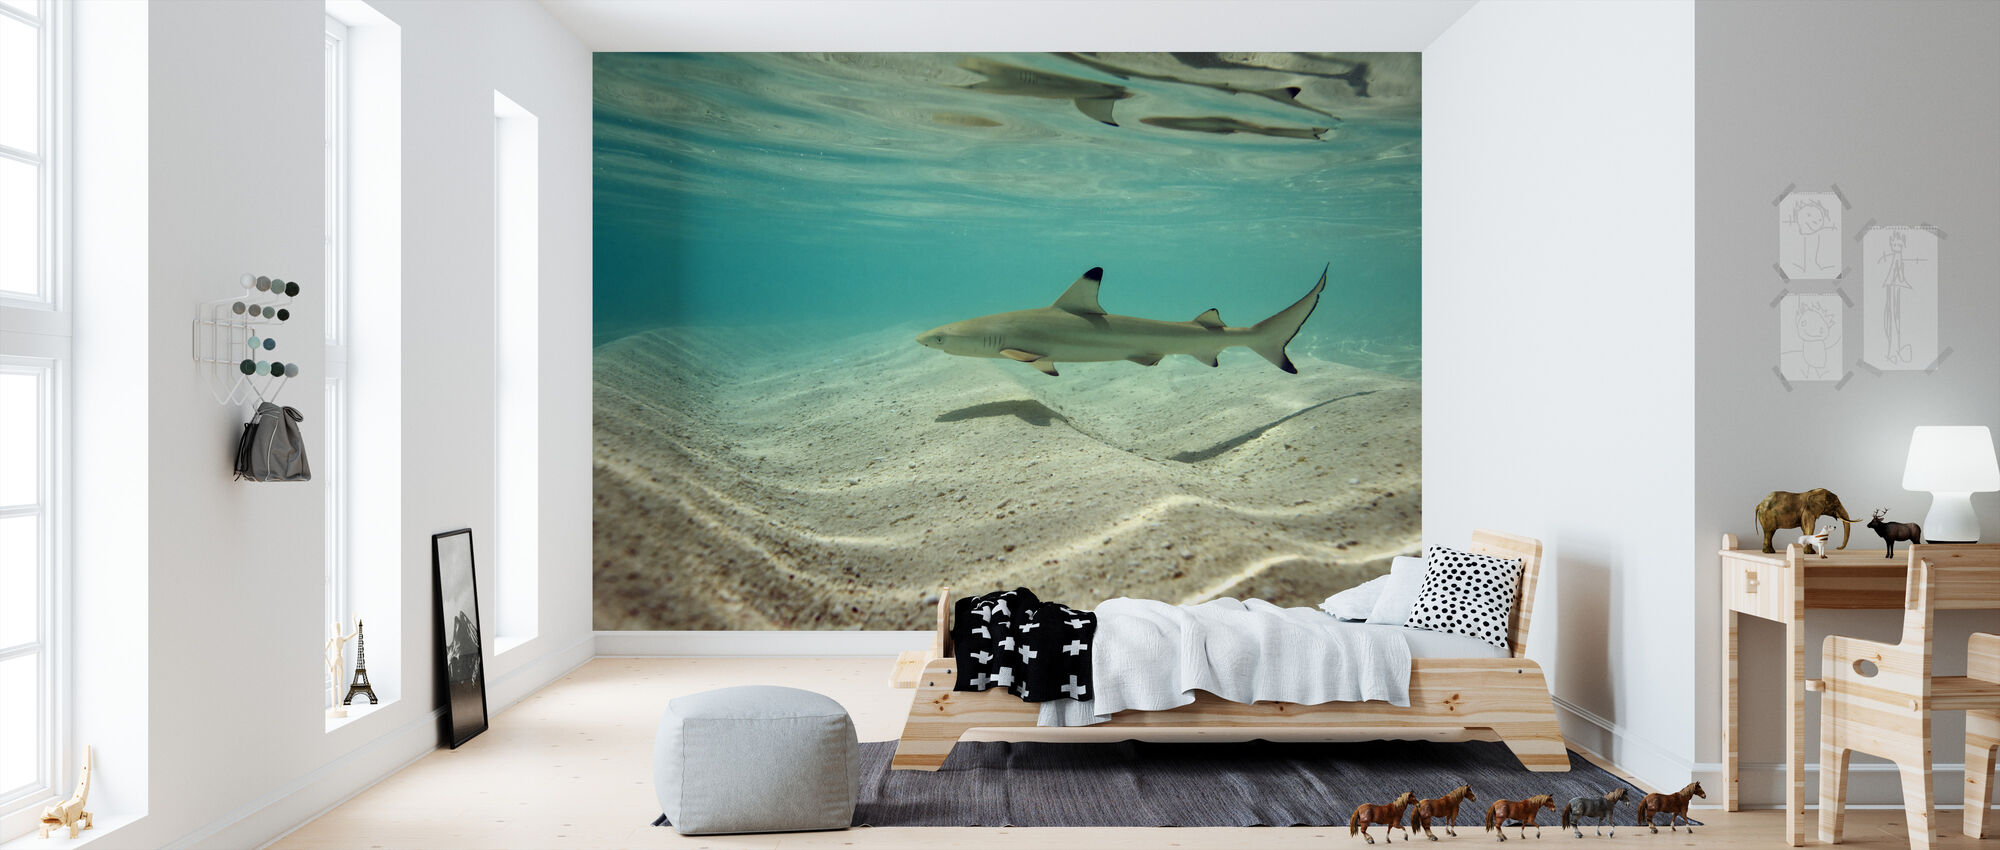 Svartspets Reef Shark - Tapet - Barnrum